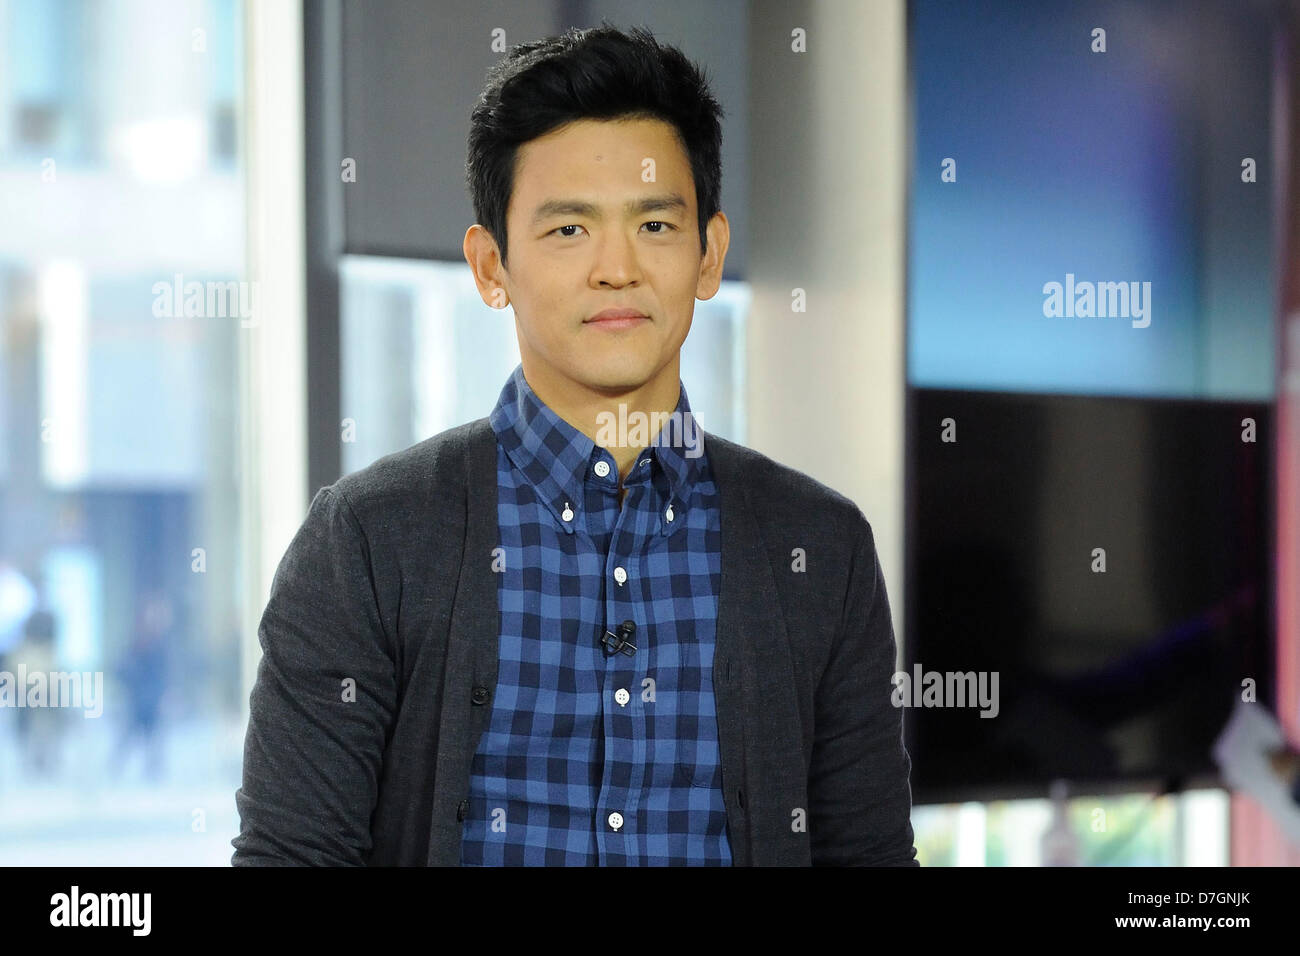 Toronto, Canada. 7th May, 2013. May 7, 2013. Toronto, Canada. American actor and musician, John Cho appears on Global - Stock Image